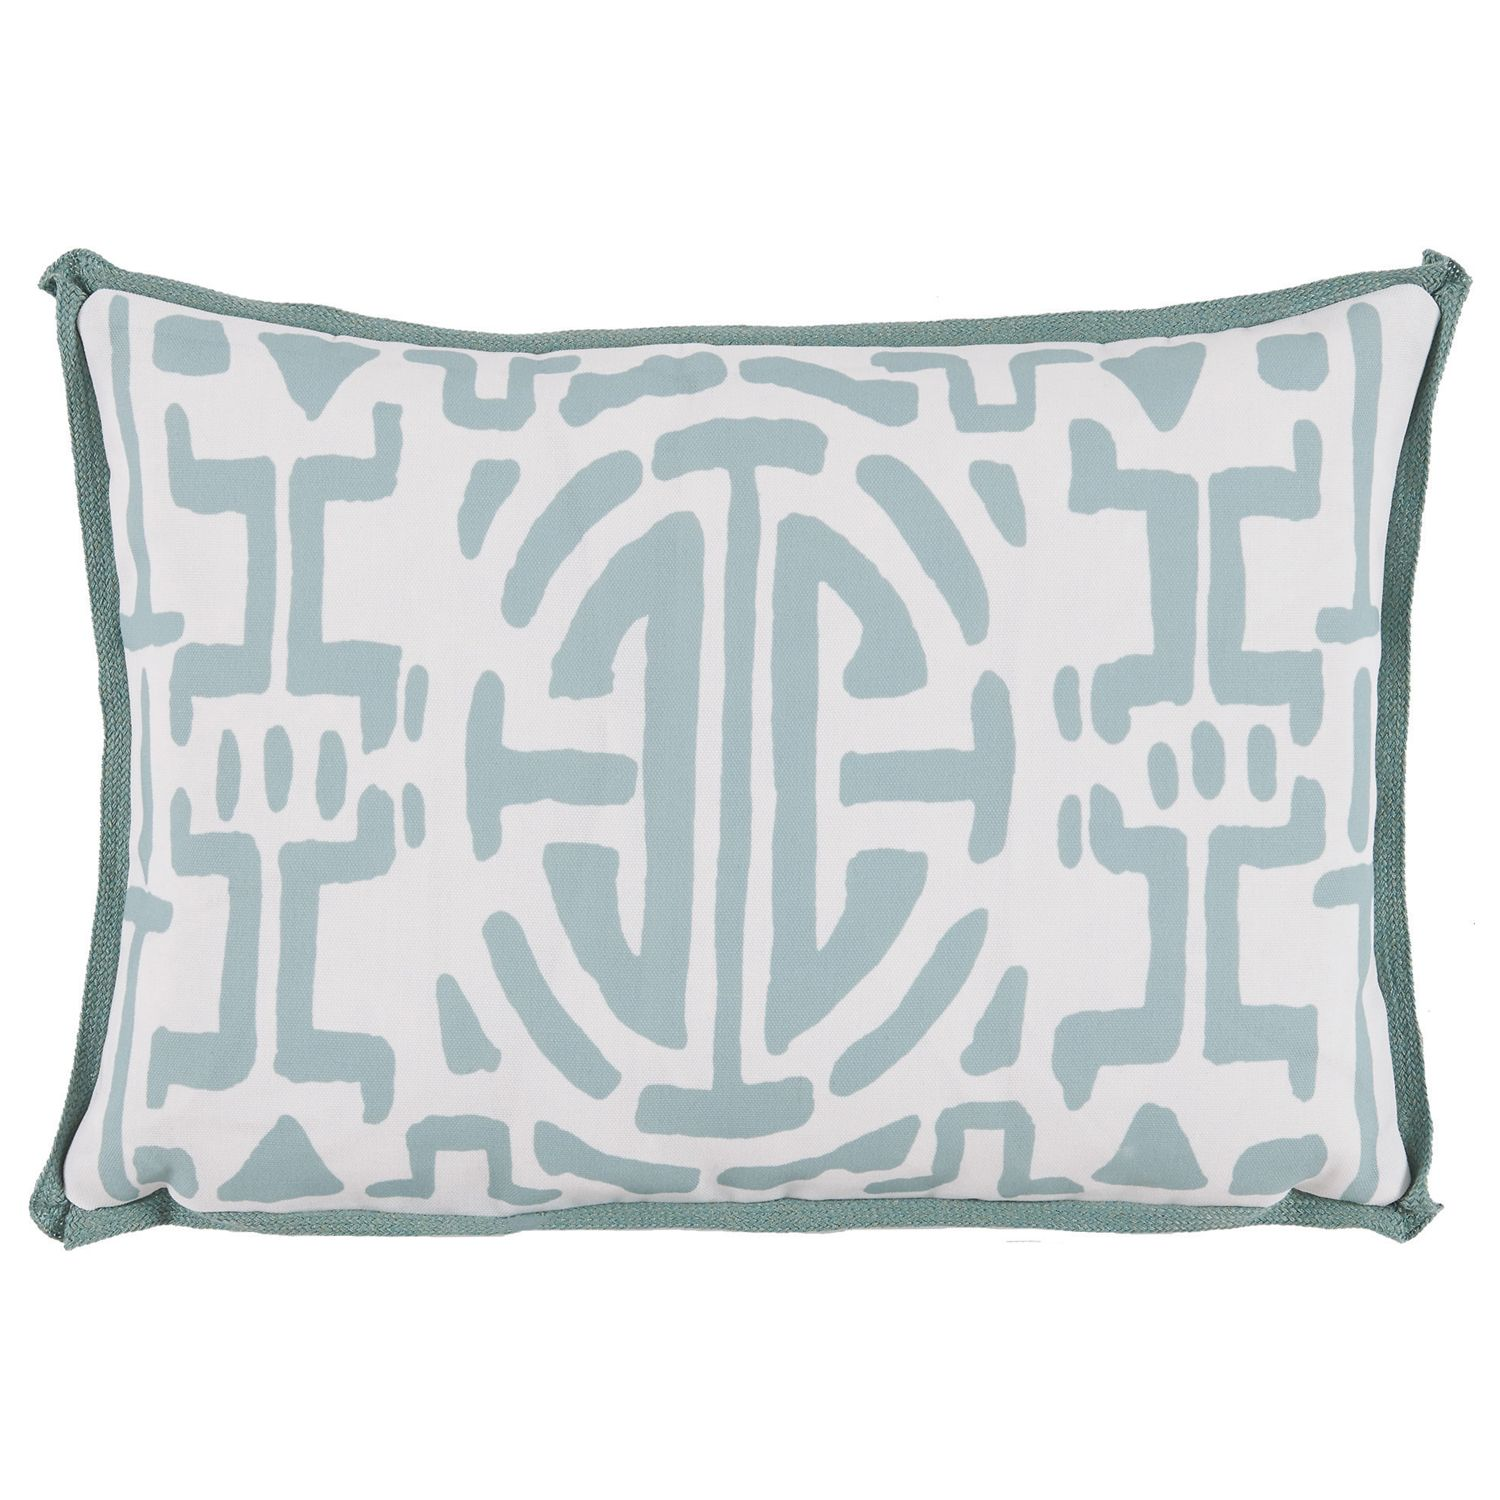 Lacefield Kyoto Surf Indooroutdoor Lumbar Pillow @Laylagrayce